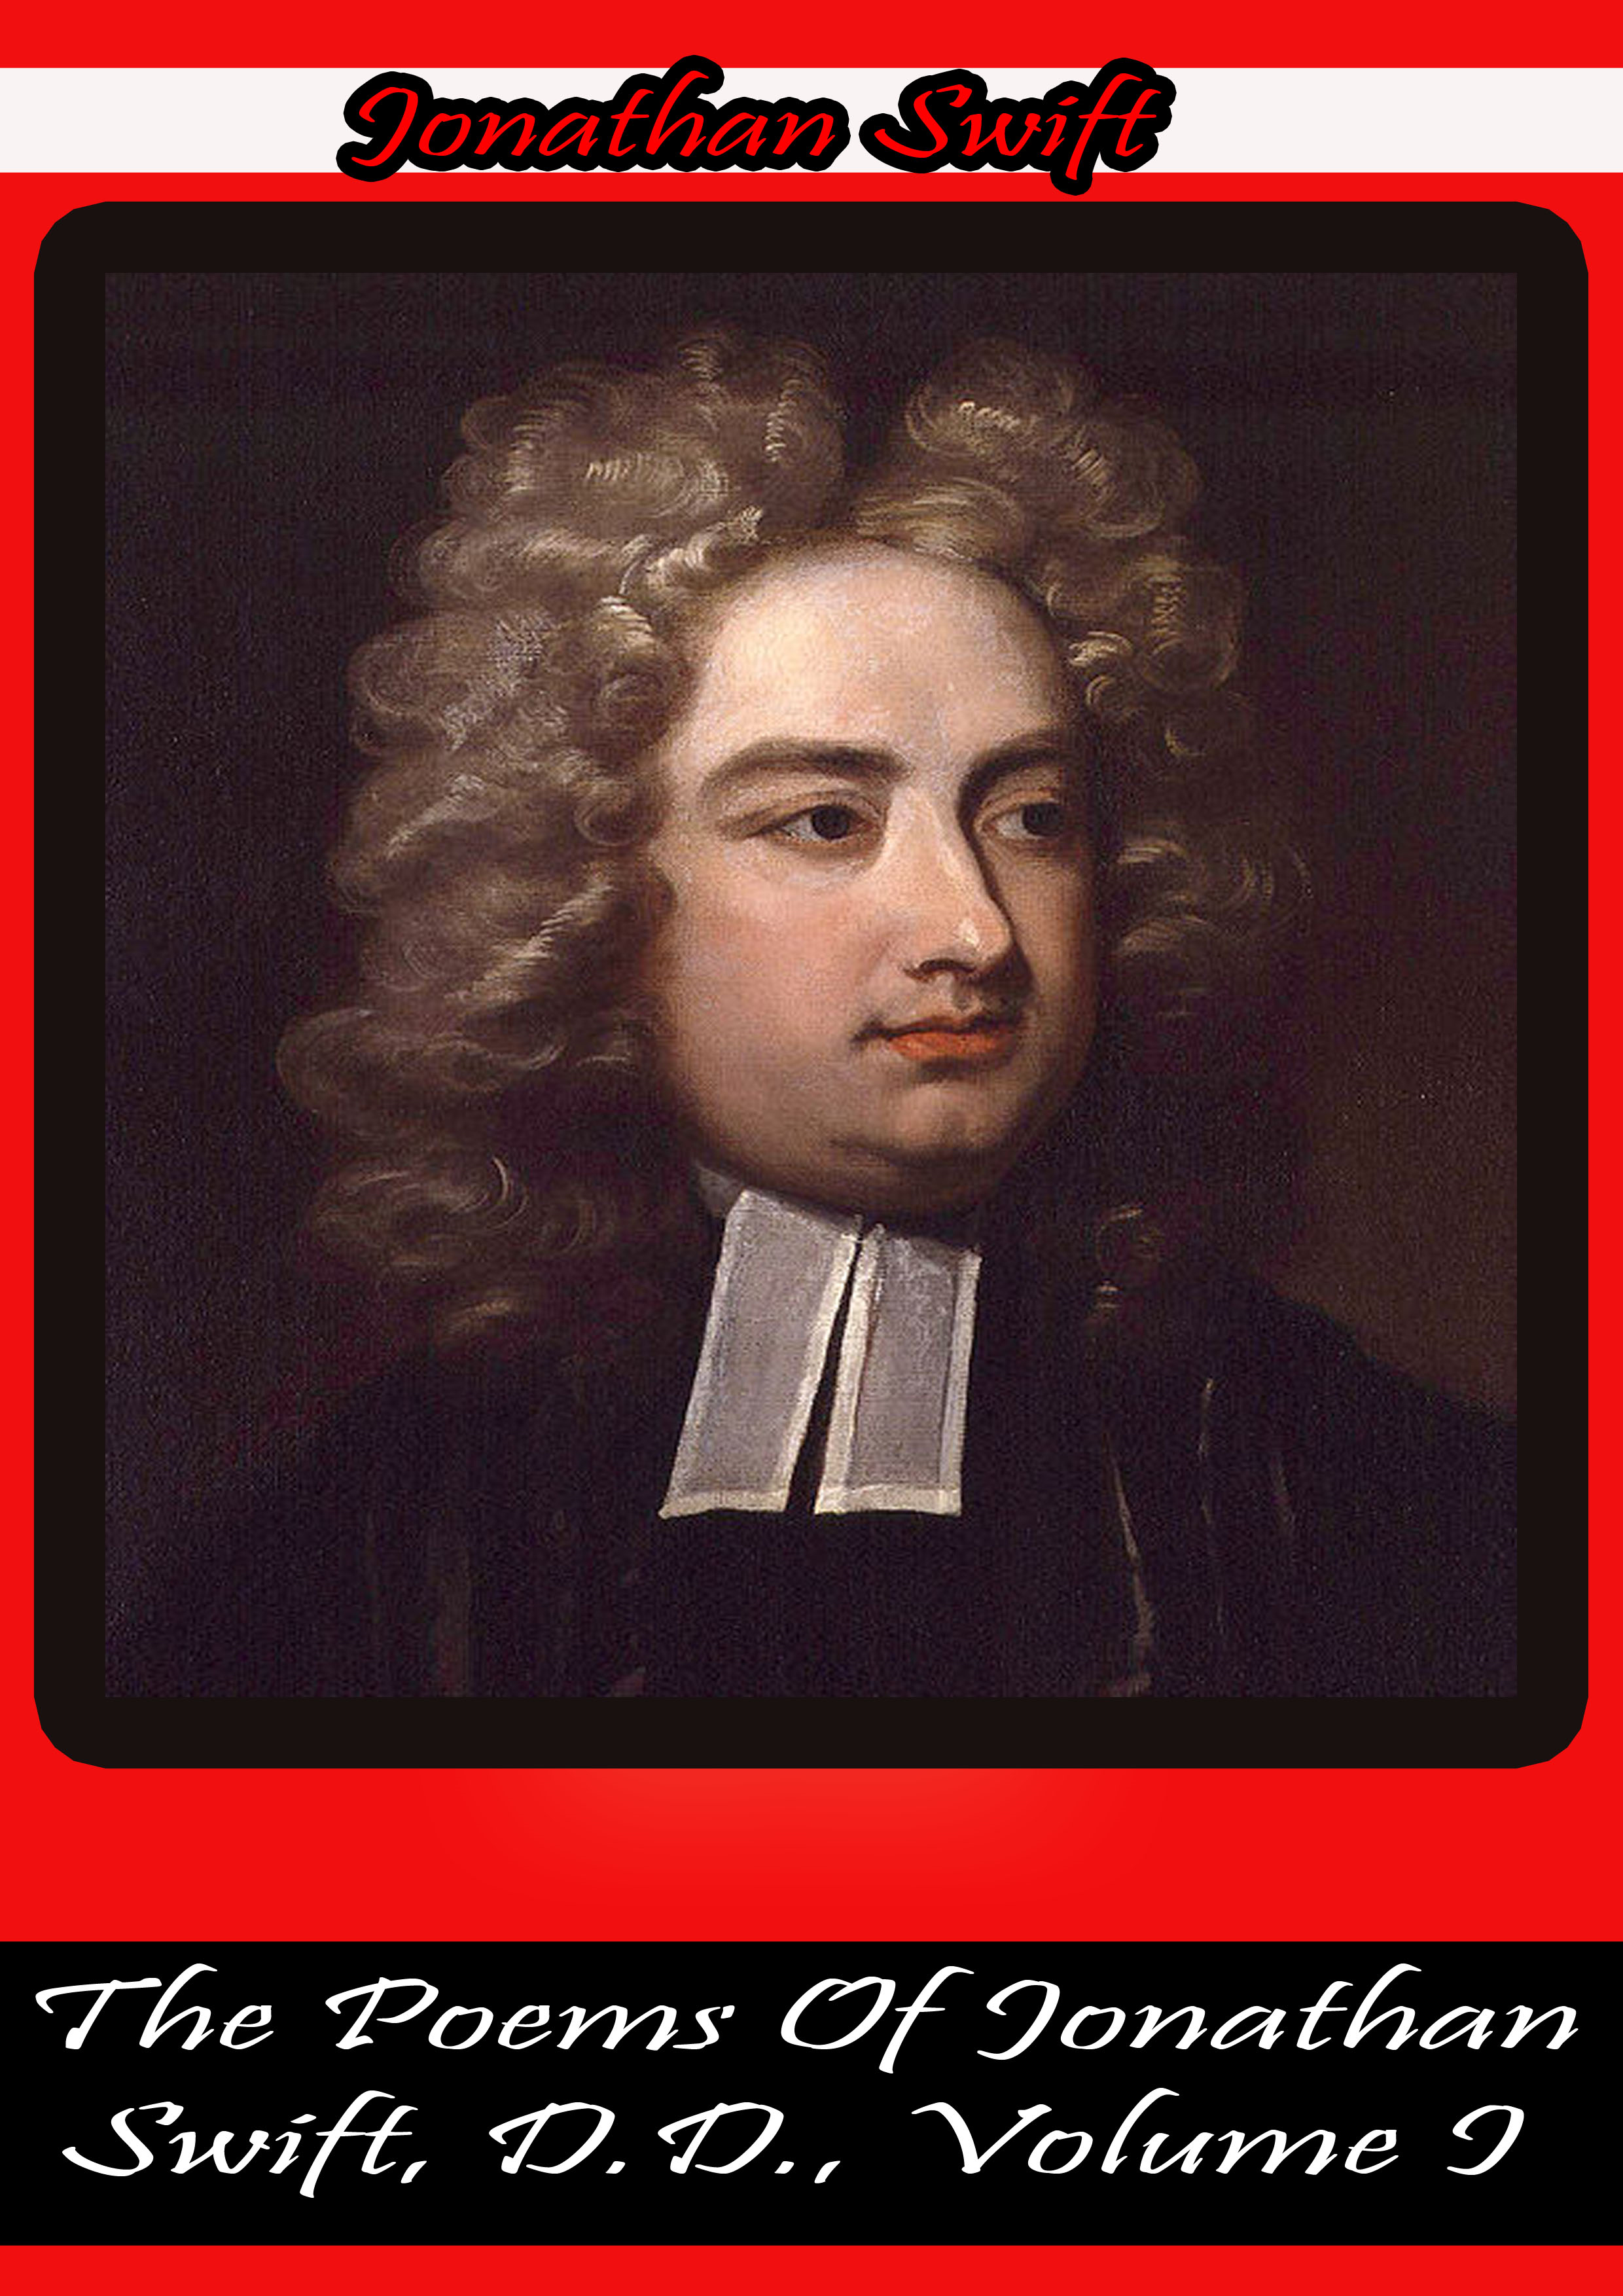 The Poems Of Jonathan Swift, D.D., Volume I